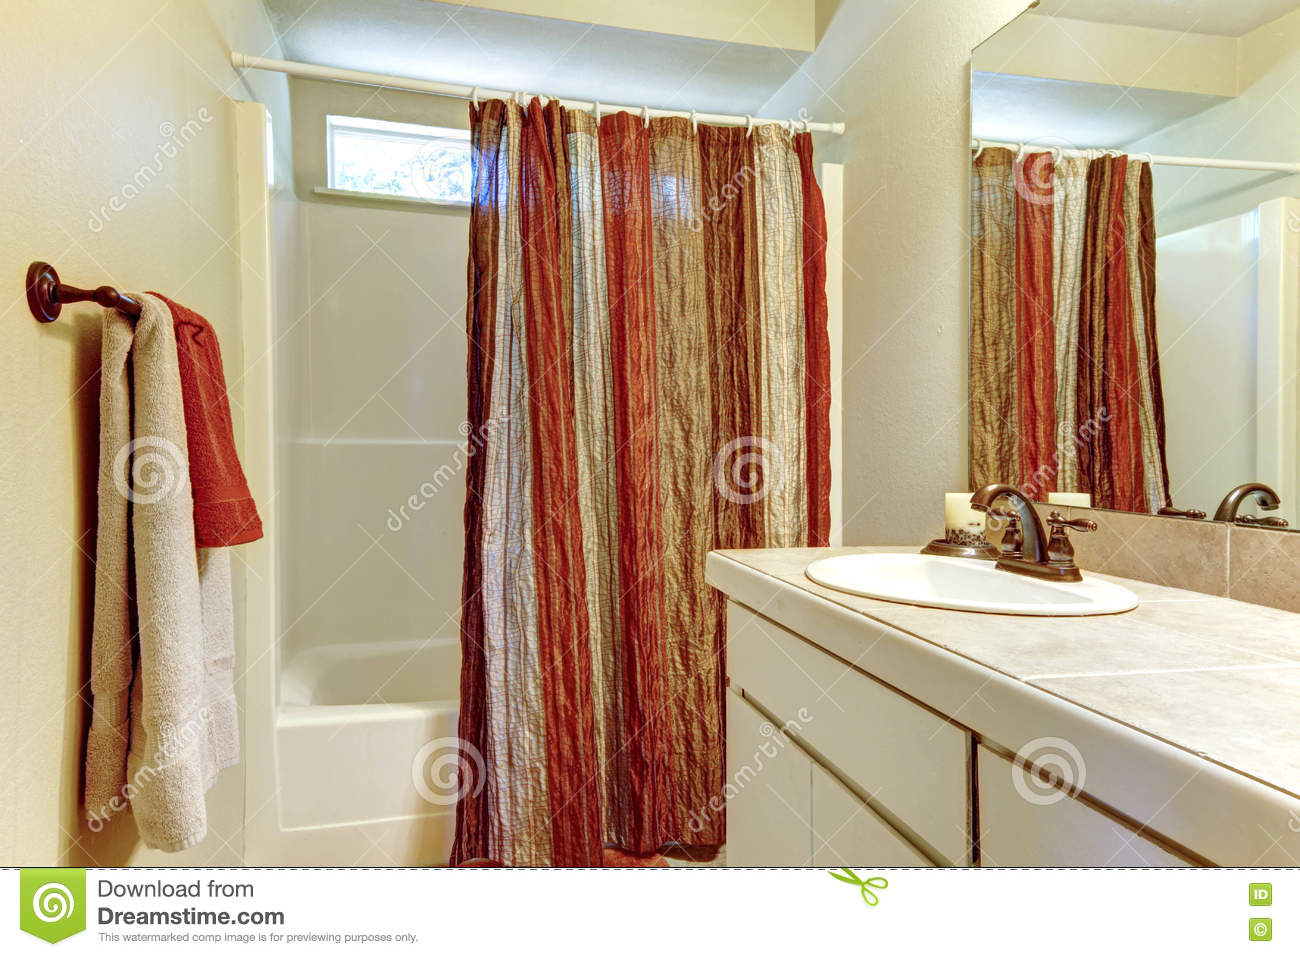 Simple Bathroom With Red And Brown Colors In Shower Curtain